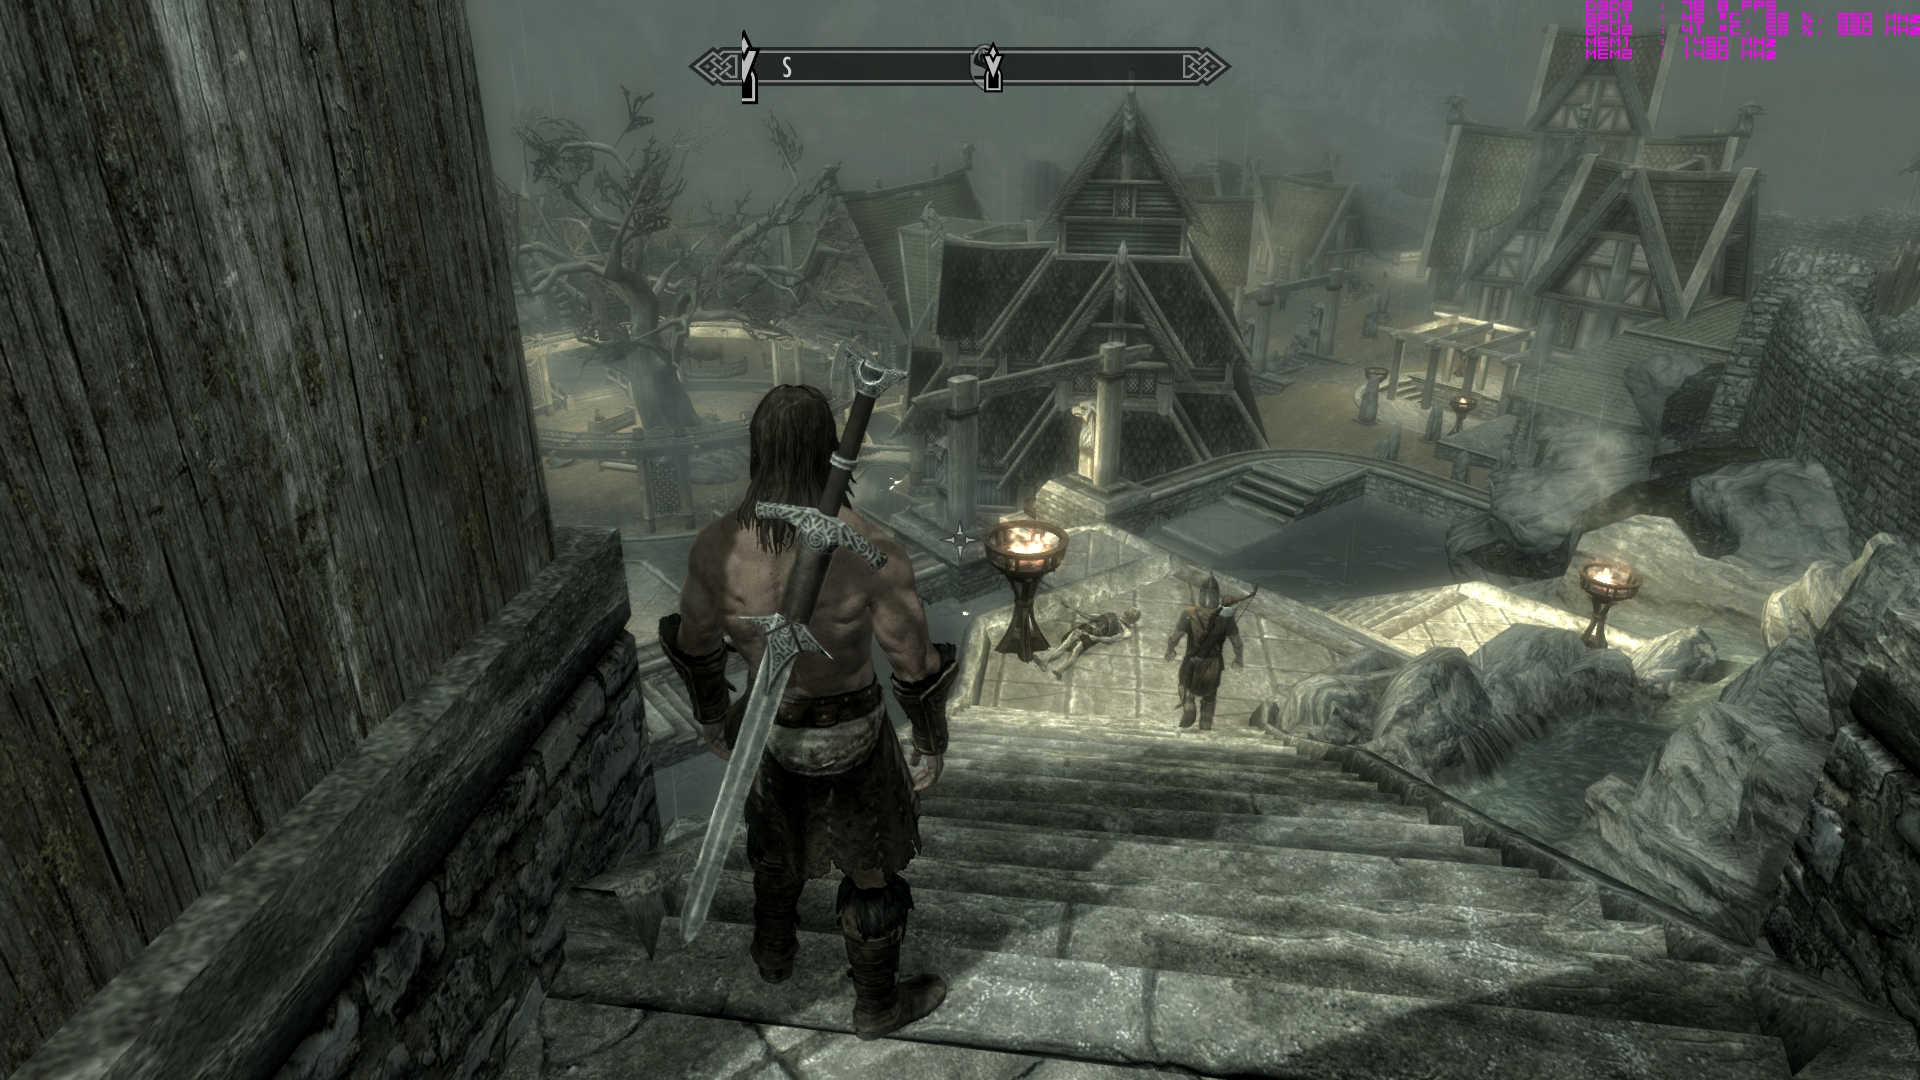 Skyrim Crossfire issues? Complete list of known fix's here